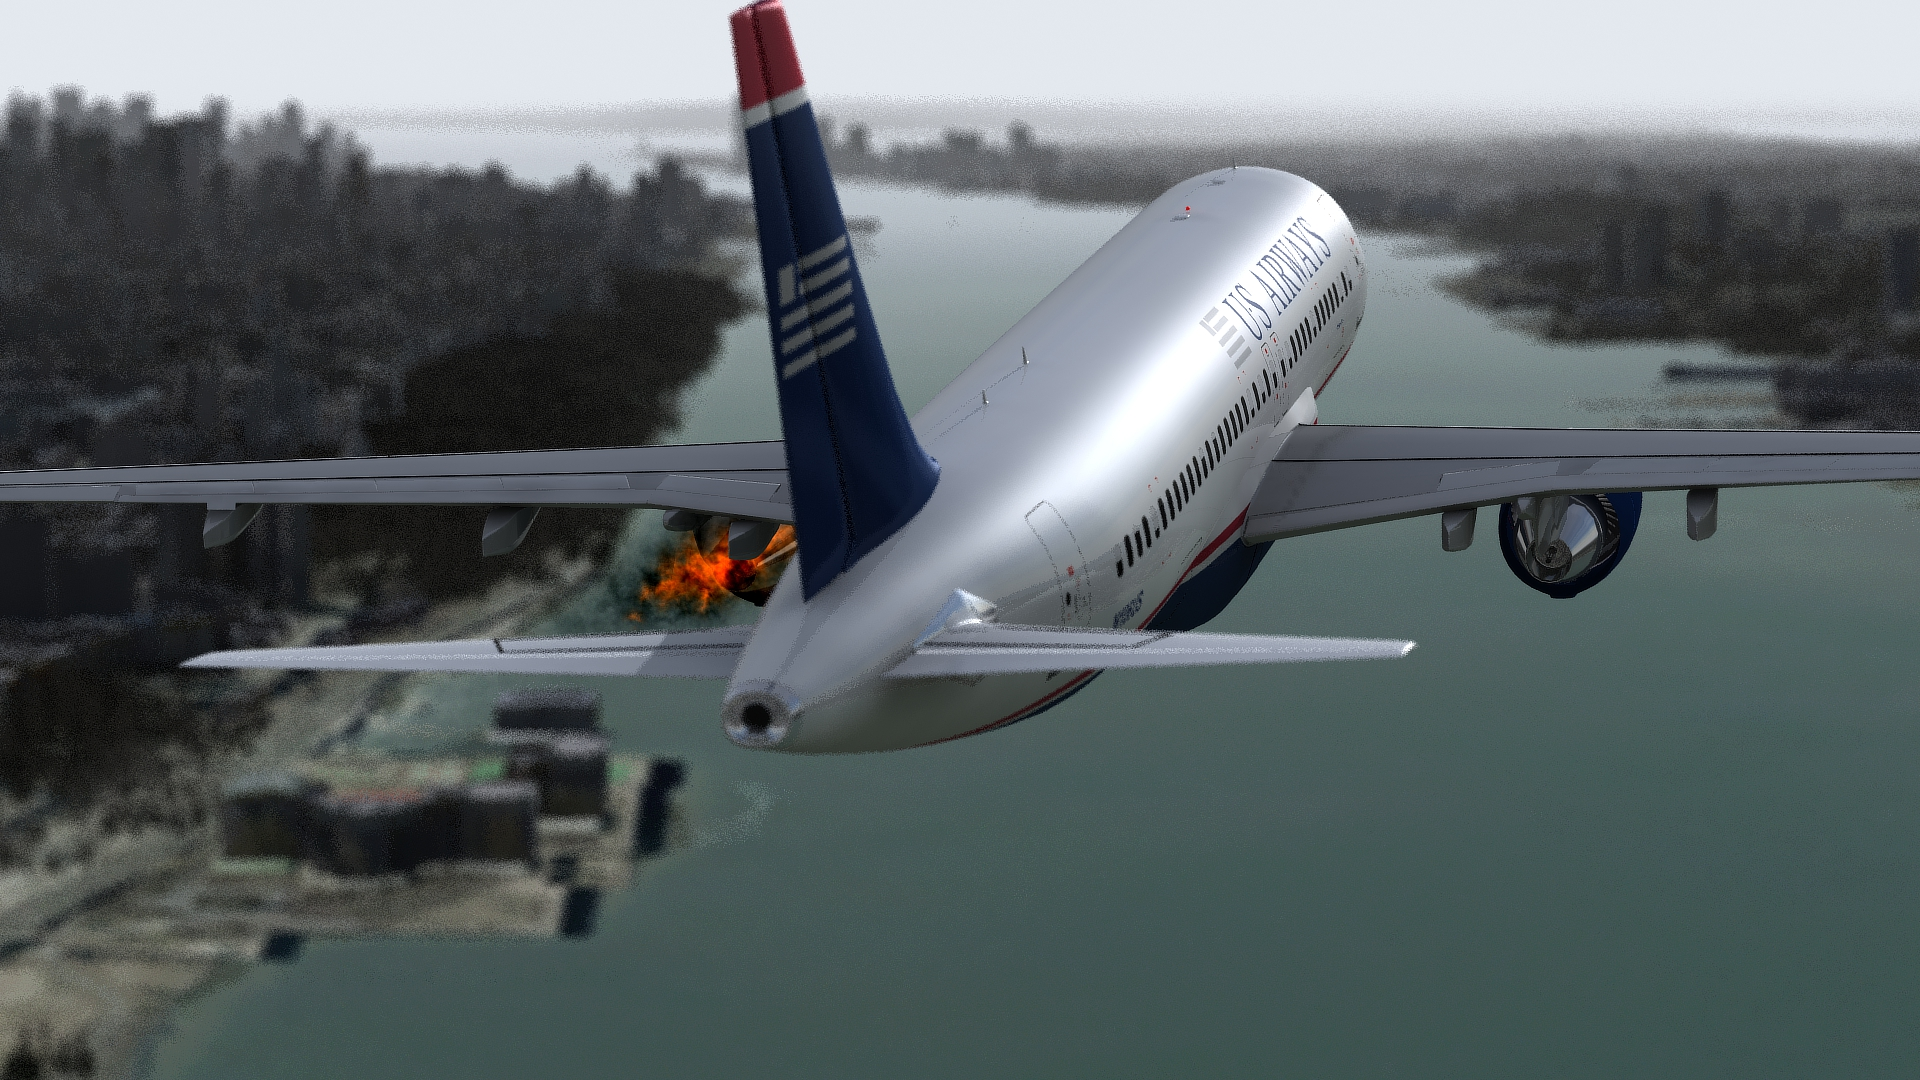 Cactus Flight 1549 Accident Reconstruction (US Airways Animation)